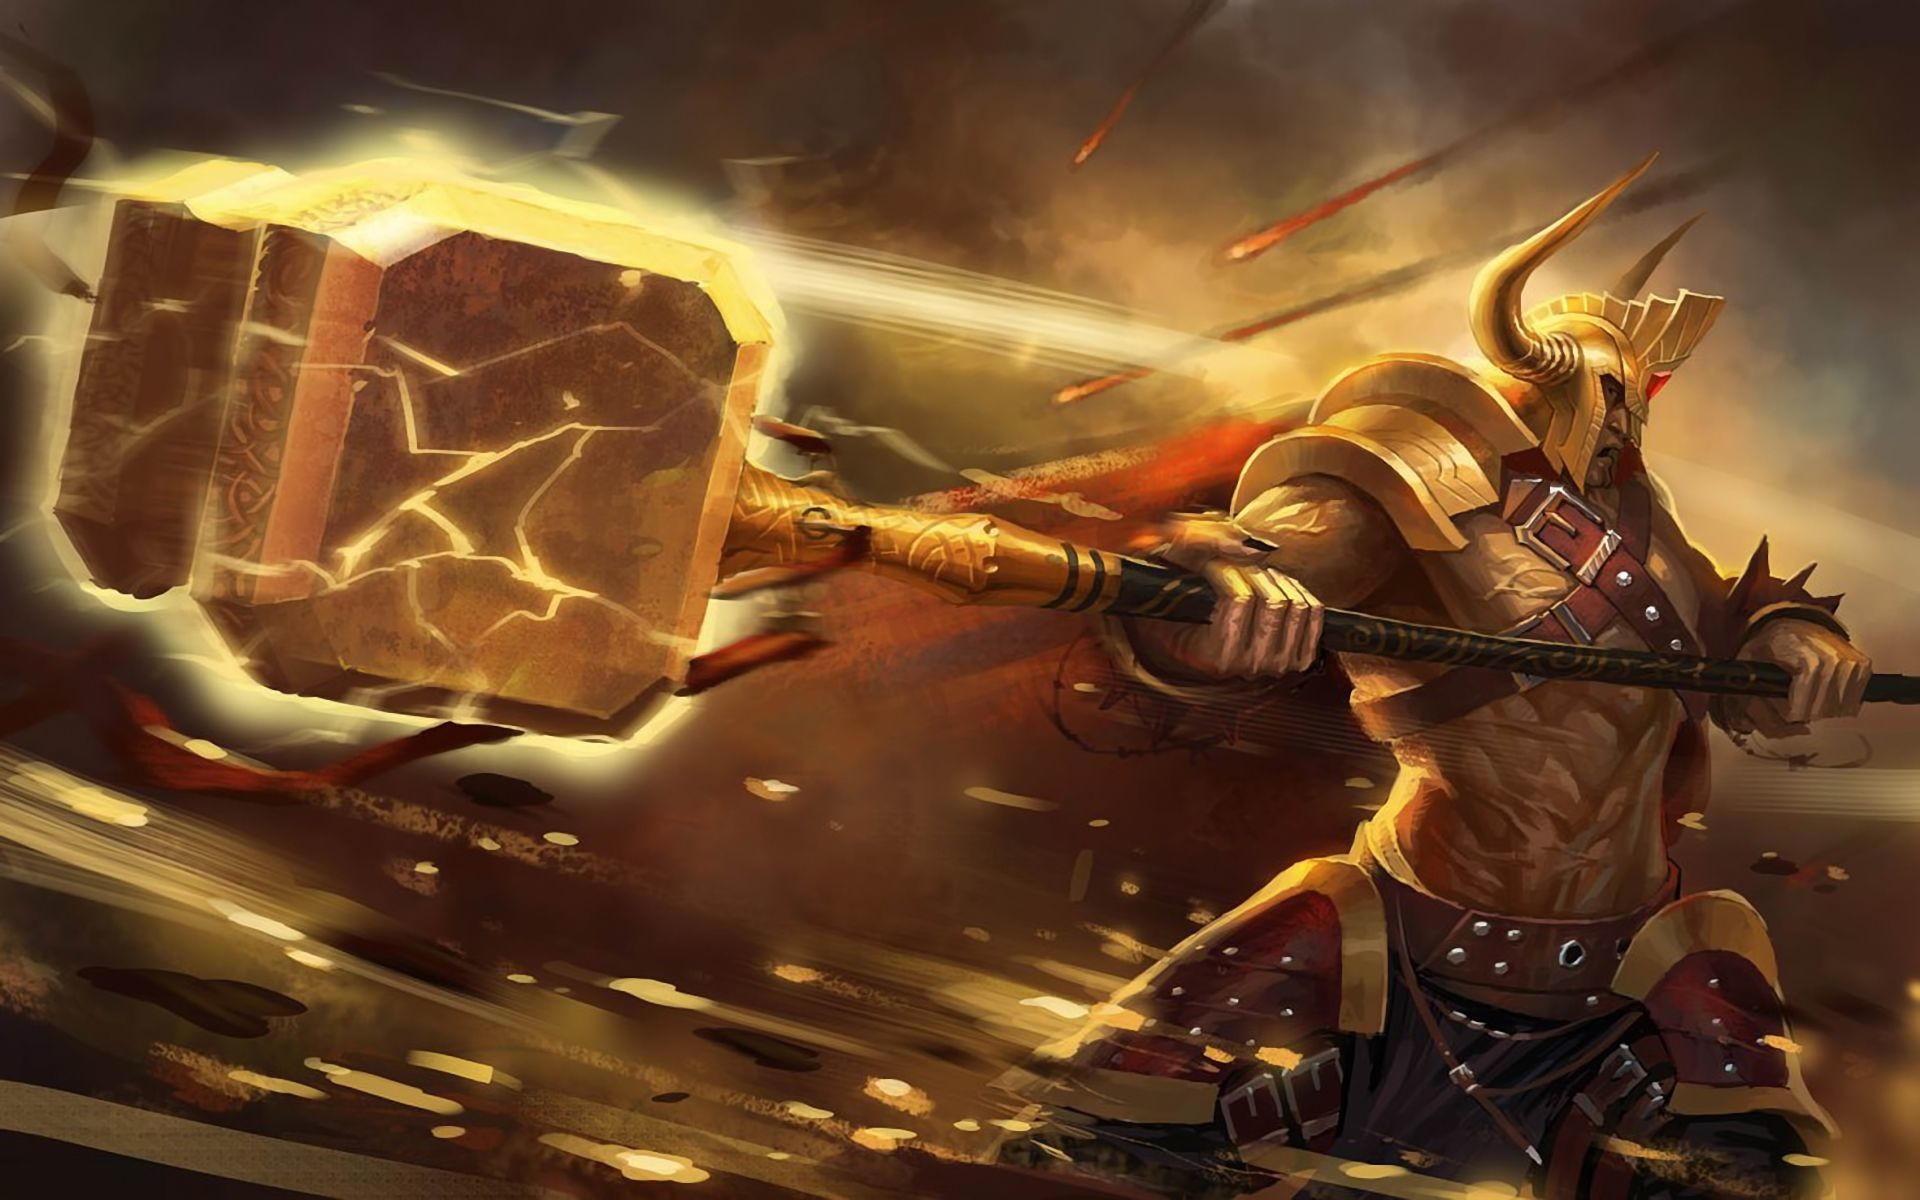 Res: 1920x1200, HD Warrior Wallpaper PK K Ultra HD Warrior Pictures Mobile